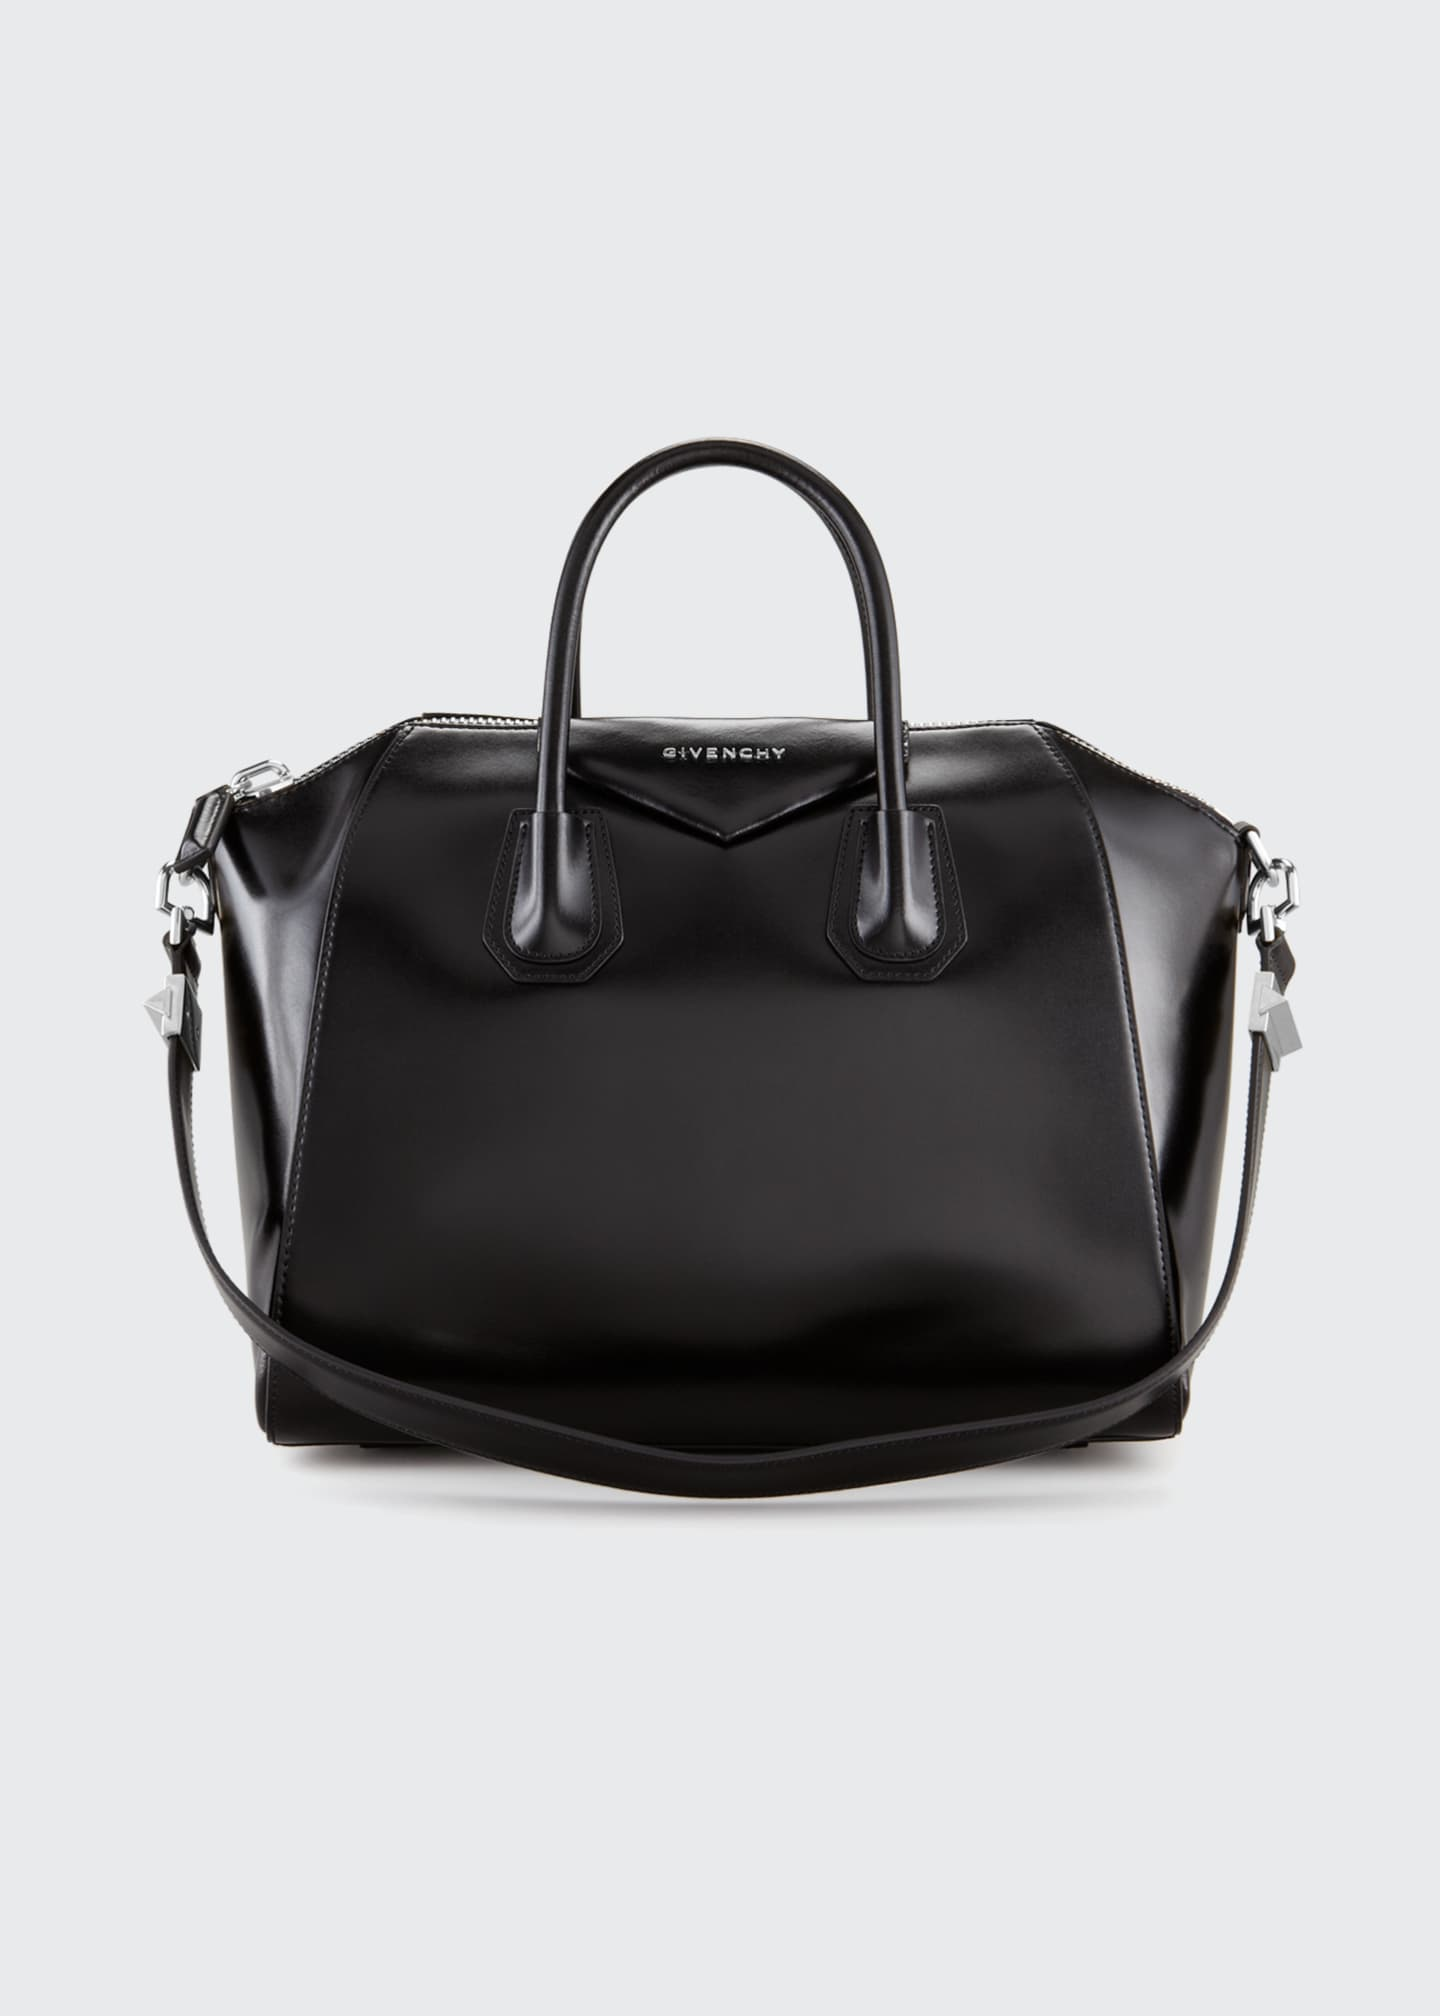 Givenchy Antigona Medium Box Calf Leather Satchel Bag